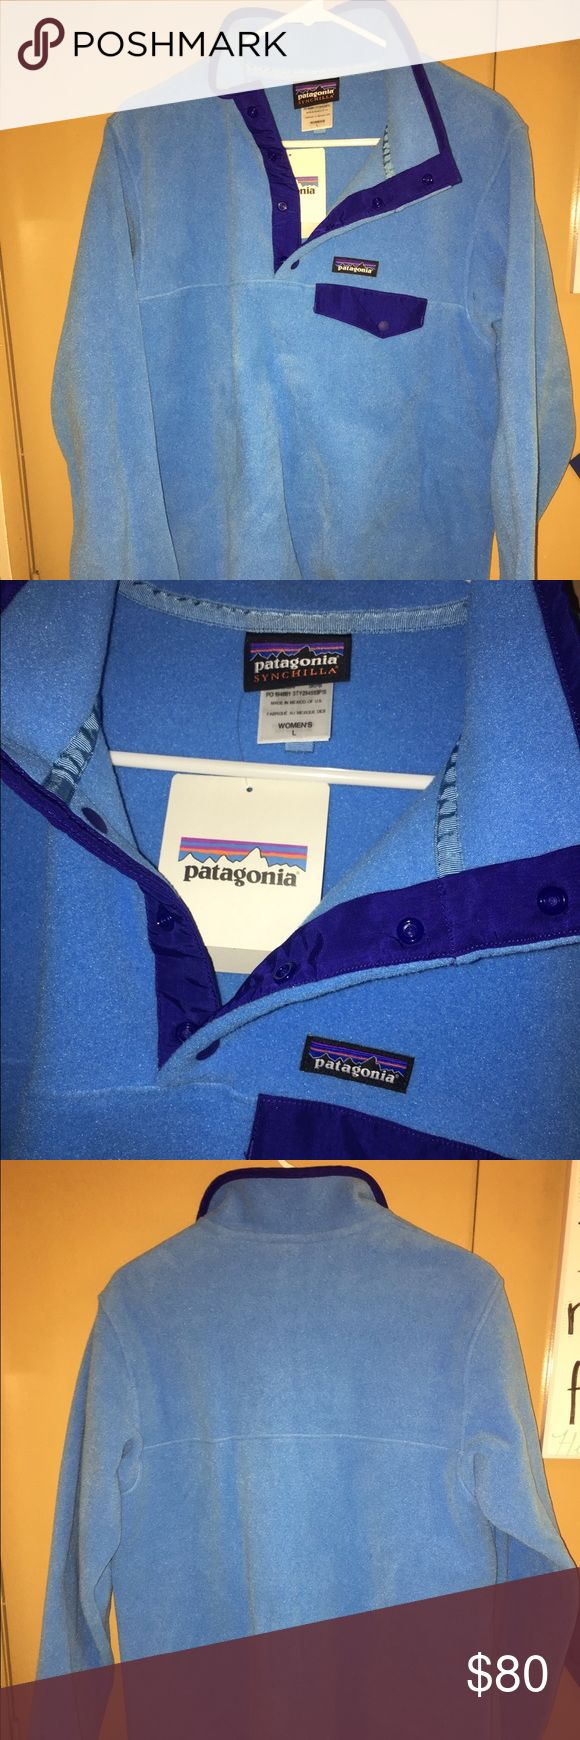 NWT Patagonia Synchilla Snap-T Pullover - Women's NEW WITH TAGS NEVER WORN! Patagonia Synchilla Snap-T Pullover, size large. Patagonia Jackets & Coats